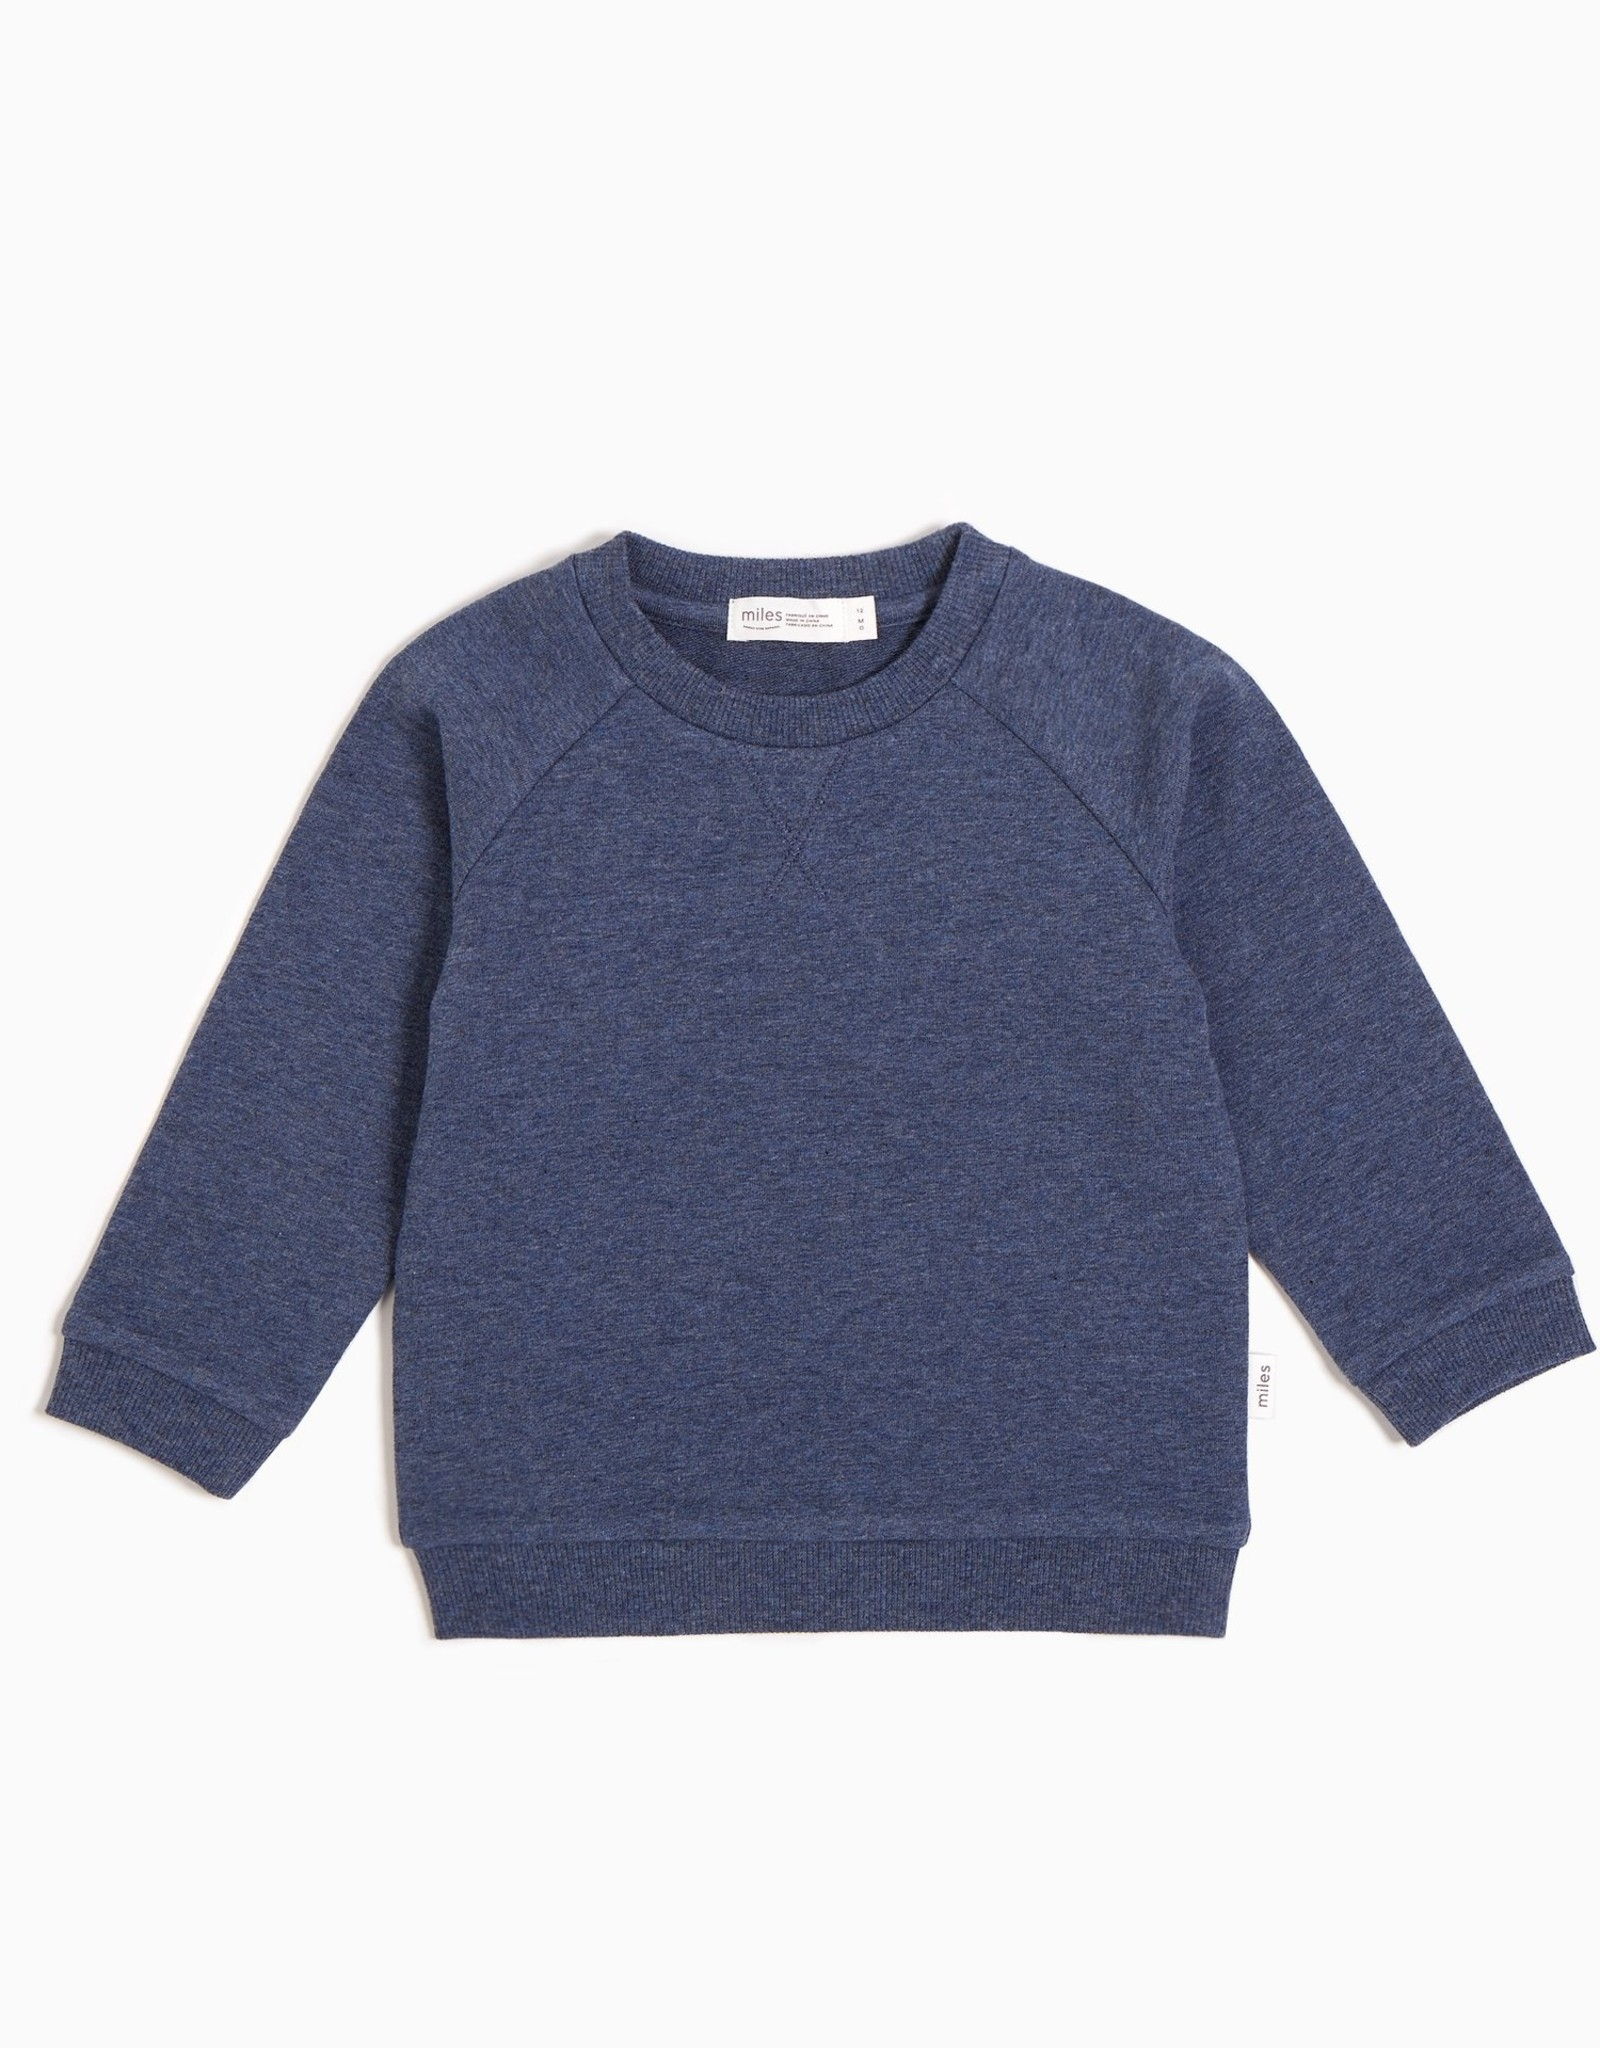 "Miles Baby ""Miles Basic"" Baby Sweater"